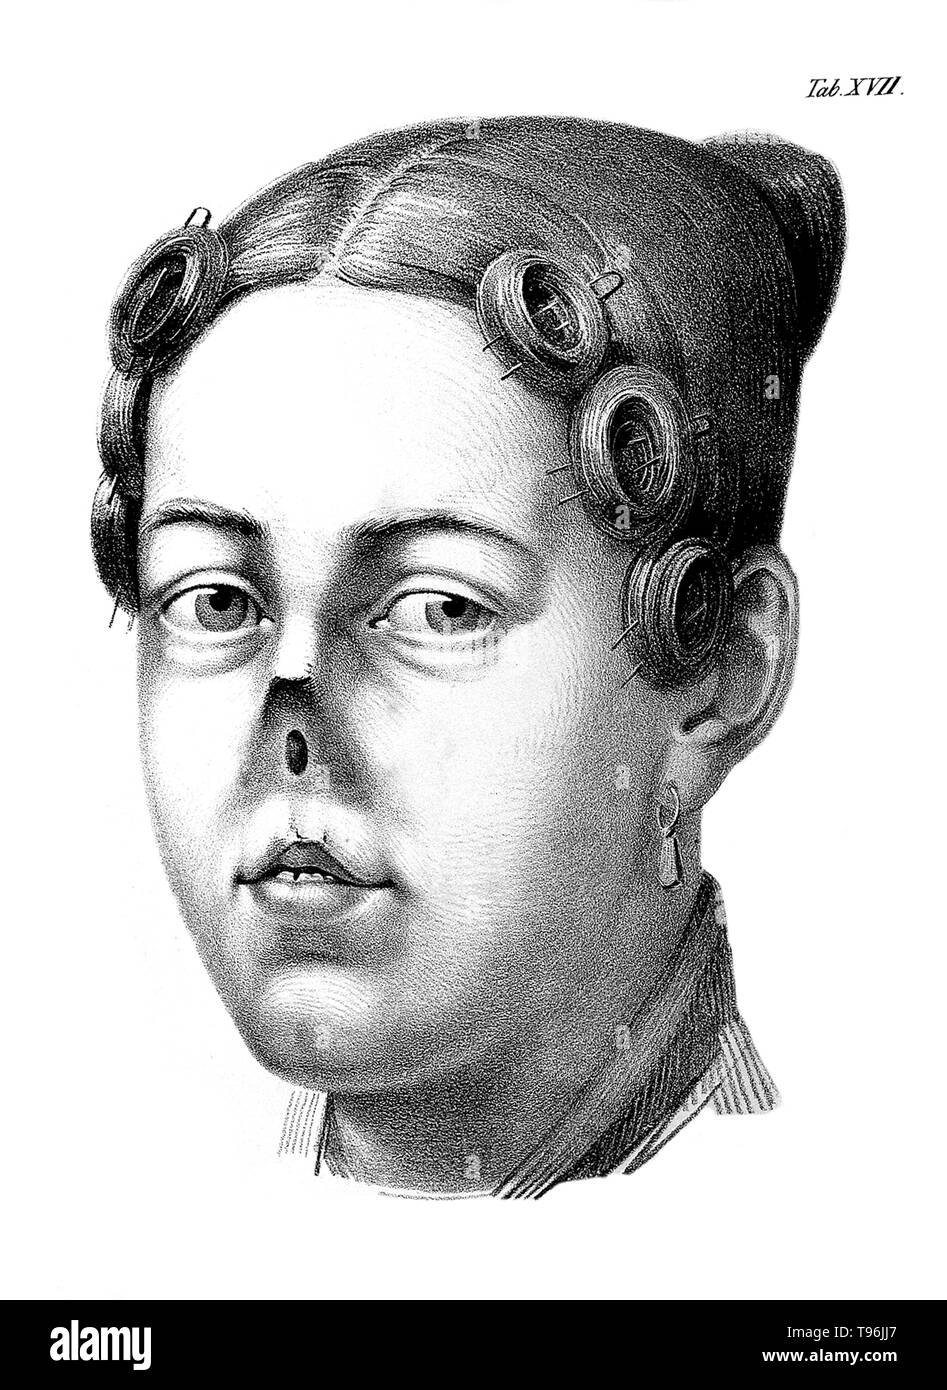 Chirurgische Erfahrungen. Woman with no nose. Johann Friedrich Dieffenbach (February  1, 1792 -  November 11, 1847) was a German surgeon who specialized in skin transplantation and plastic surgery. His work in rhinoplastic and maxillofacial surgery established many modern techniques of reconstructive surgery. Before the discovery of blood typing and blood matching, Dieffenbach researched blood transfusion. - Stock Image